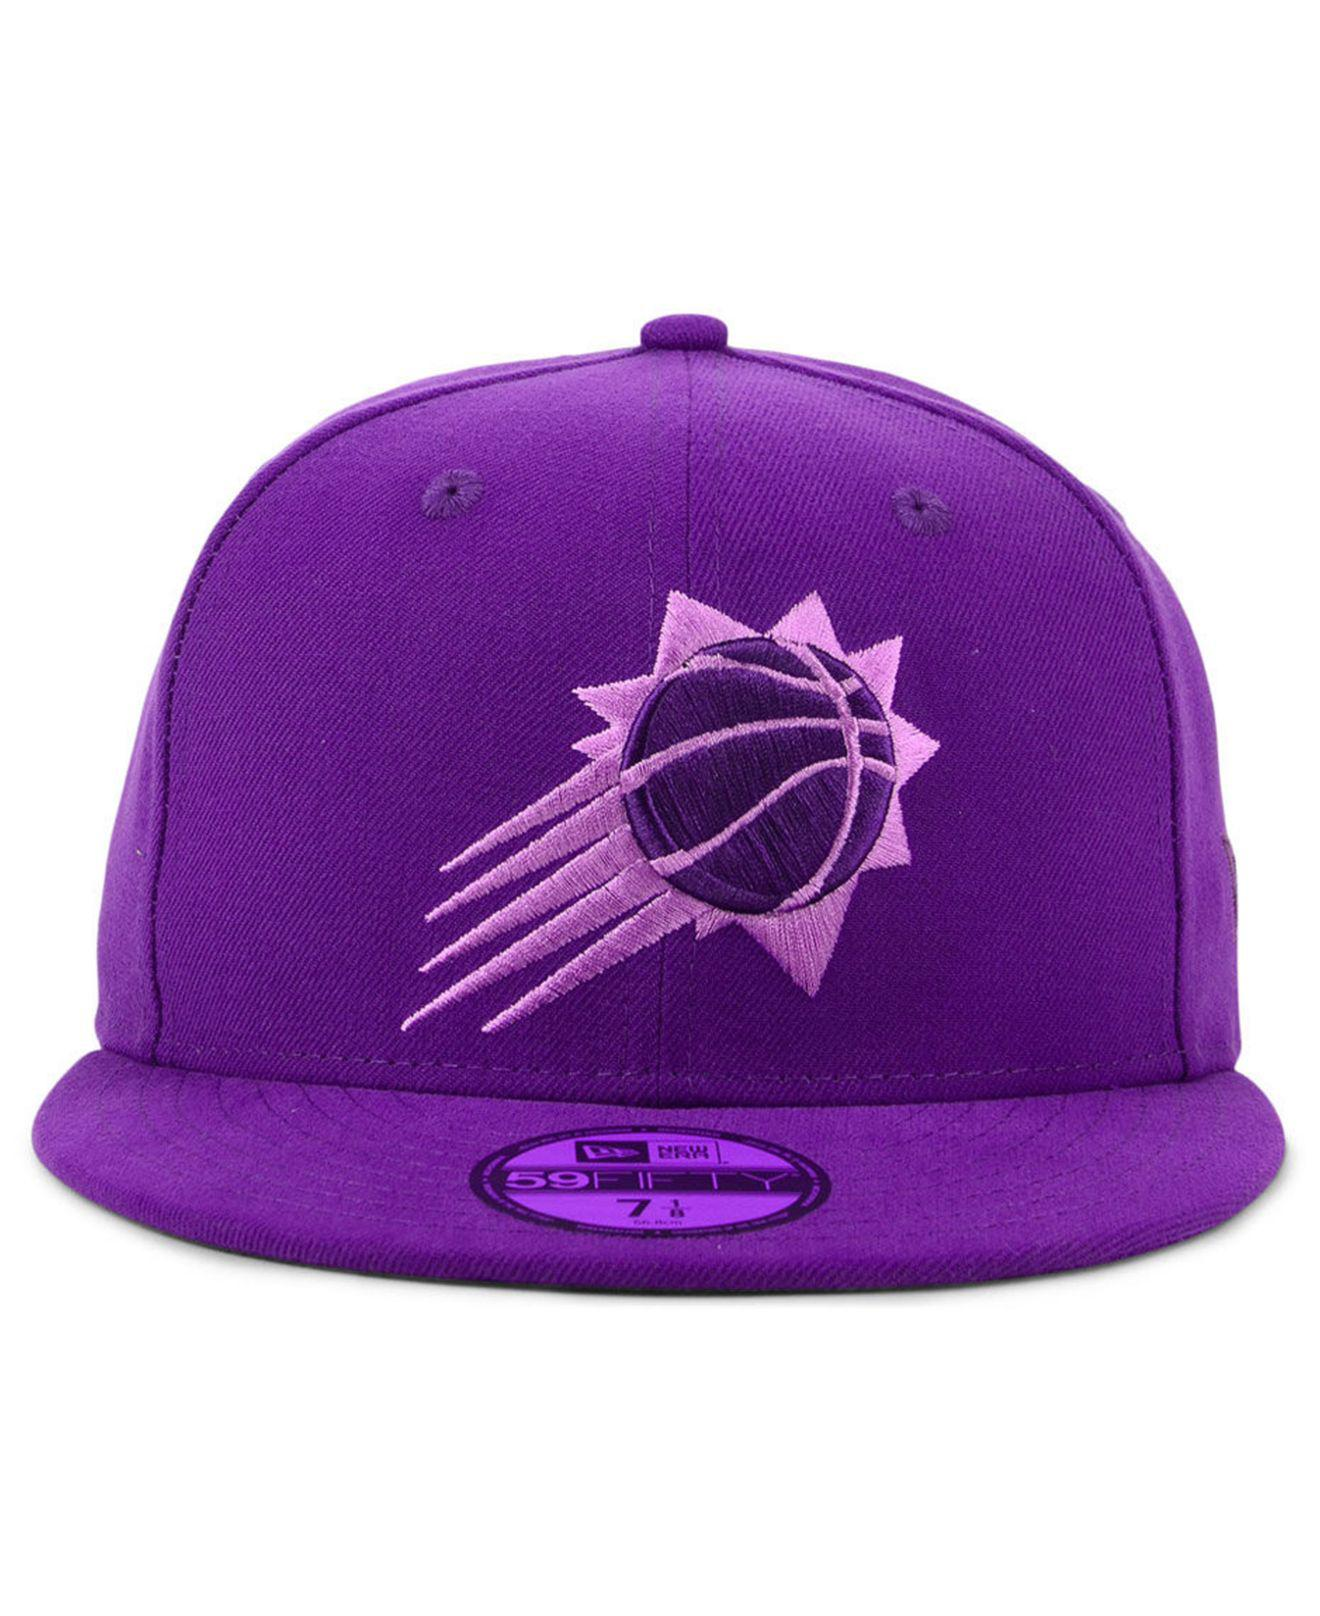 new arrival 74202 467c8 Lyst - KTZ Phoenix Suns Color Prism Pack 59fifty Fitted Cap in Purple for  Men